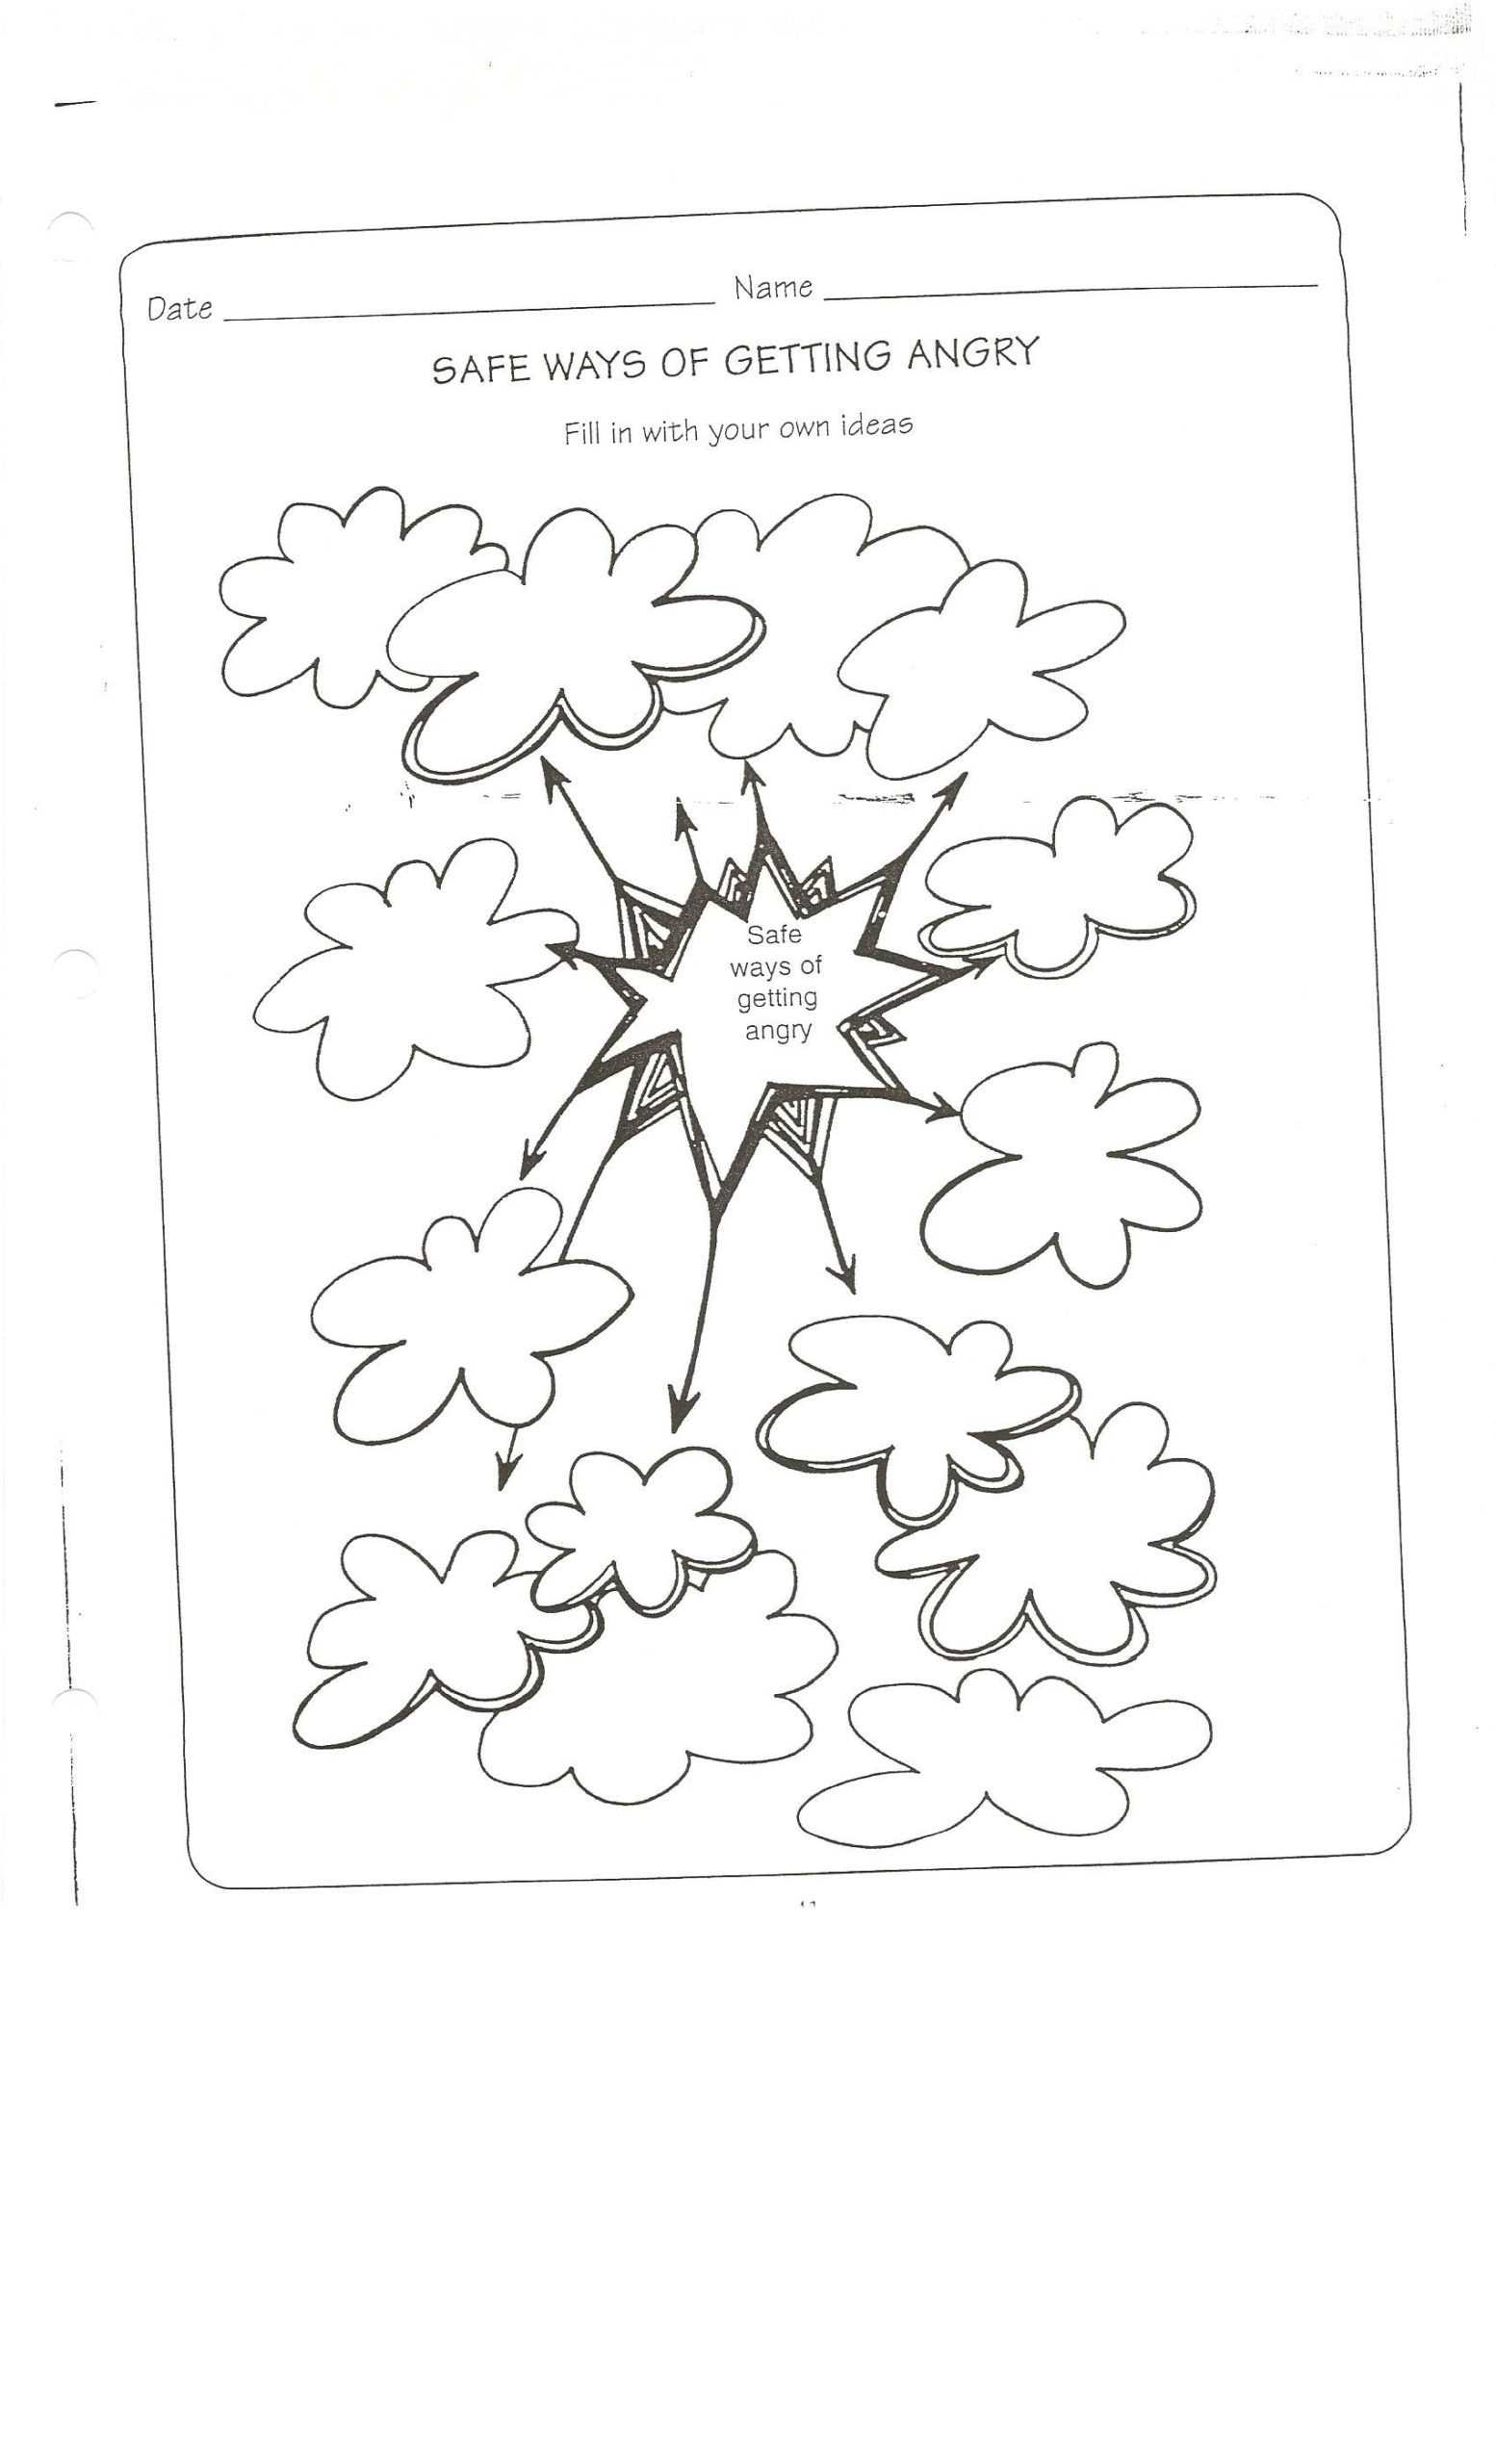 Conflict Worksheets for Middle School Safe Way to Get Angry Worksheet Conflict Resolution Safety